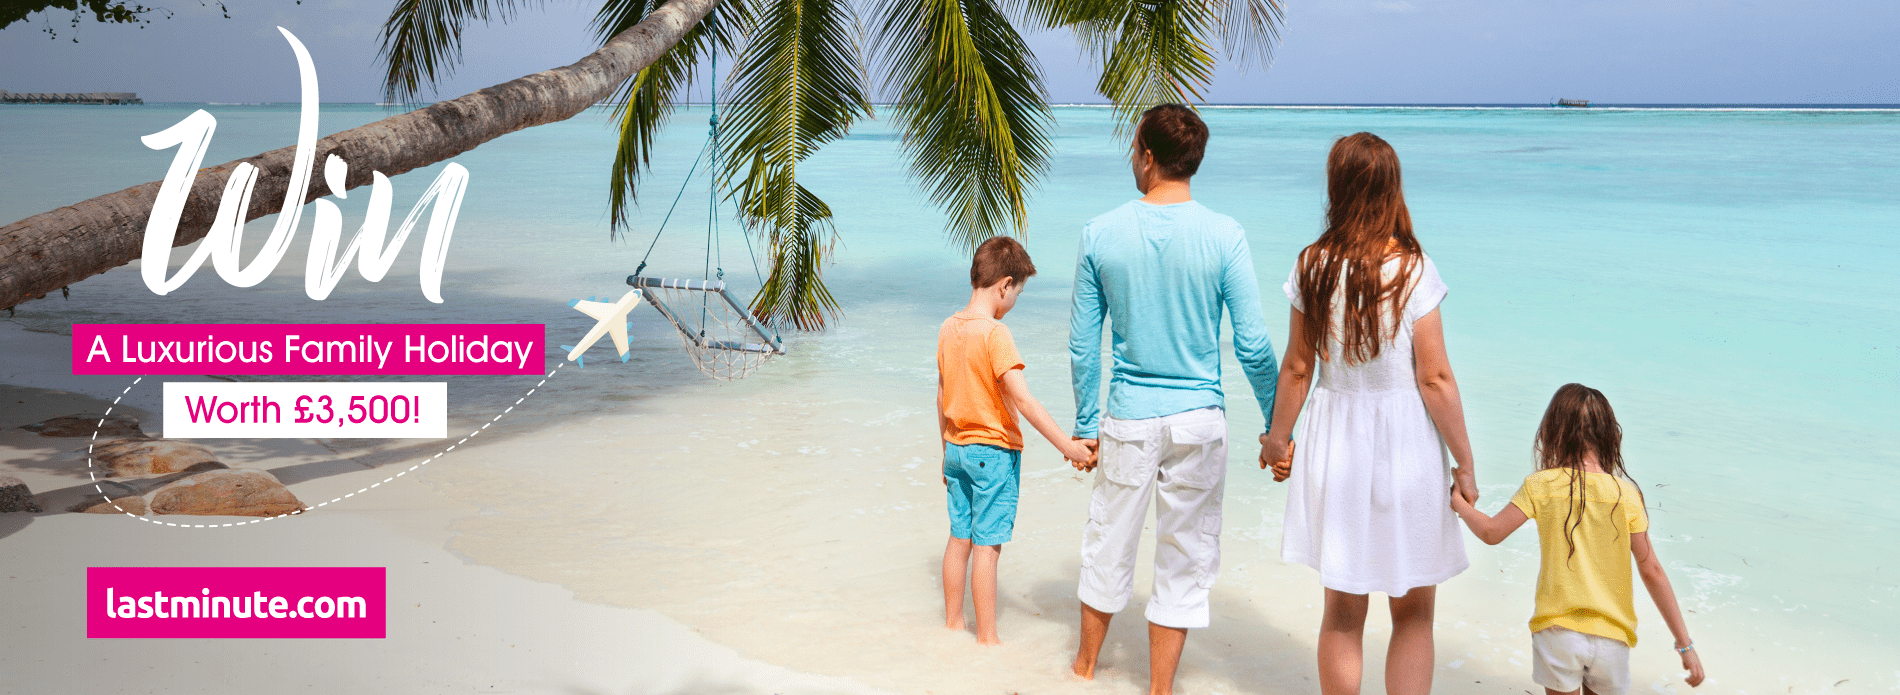 WIN a luxurious family holiday worth £3,500!